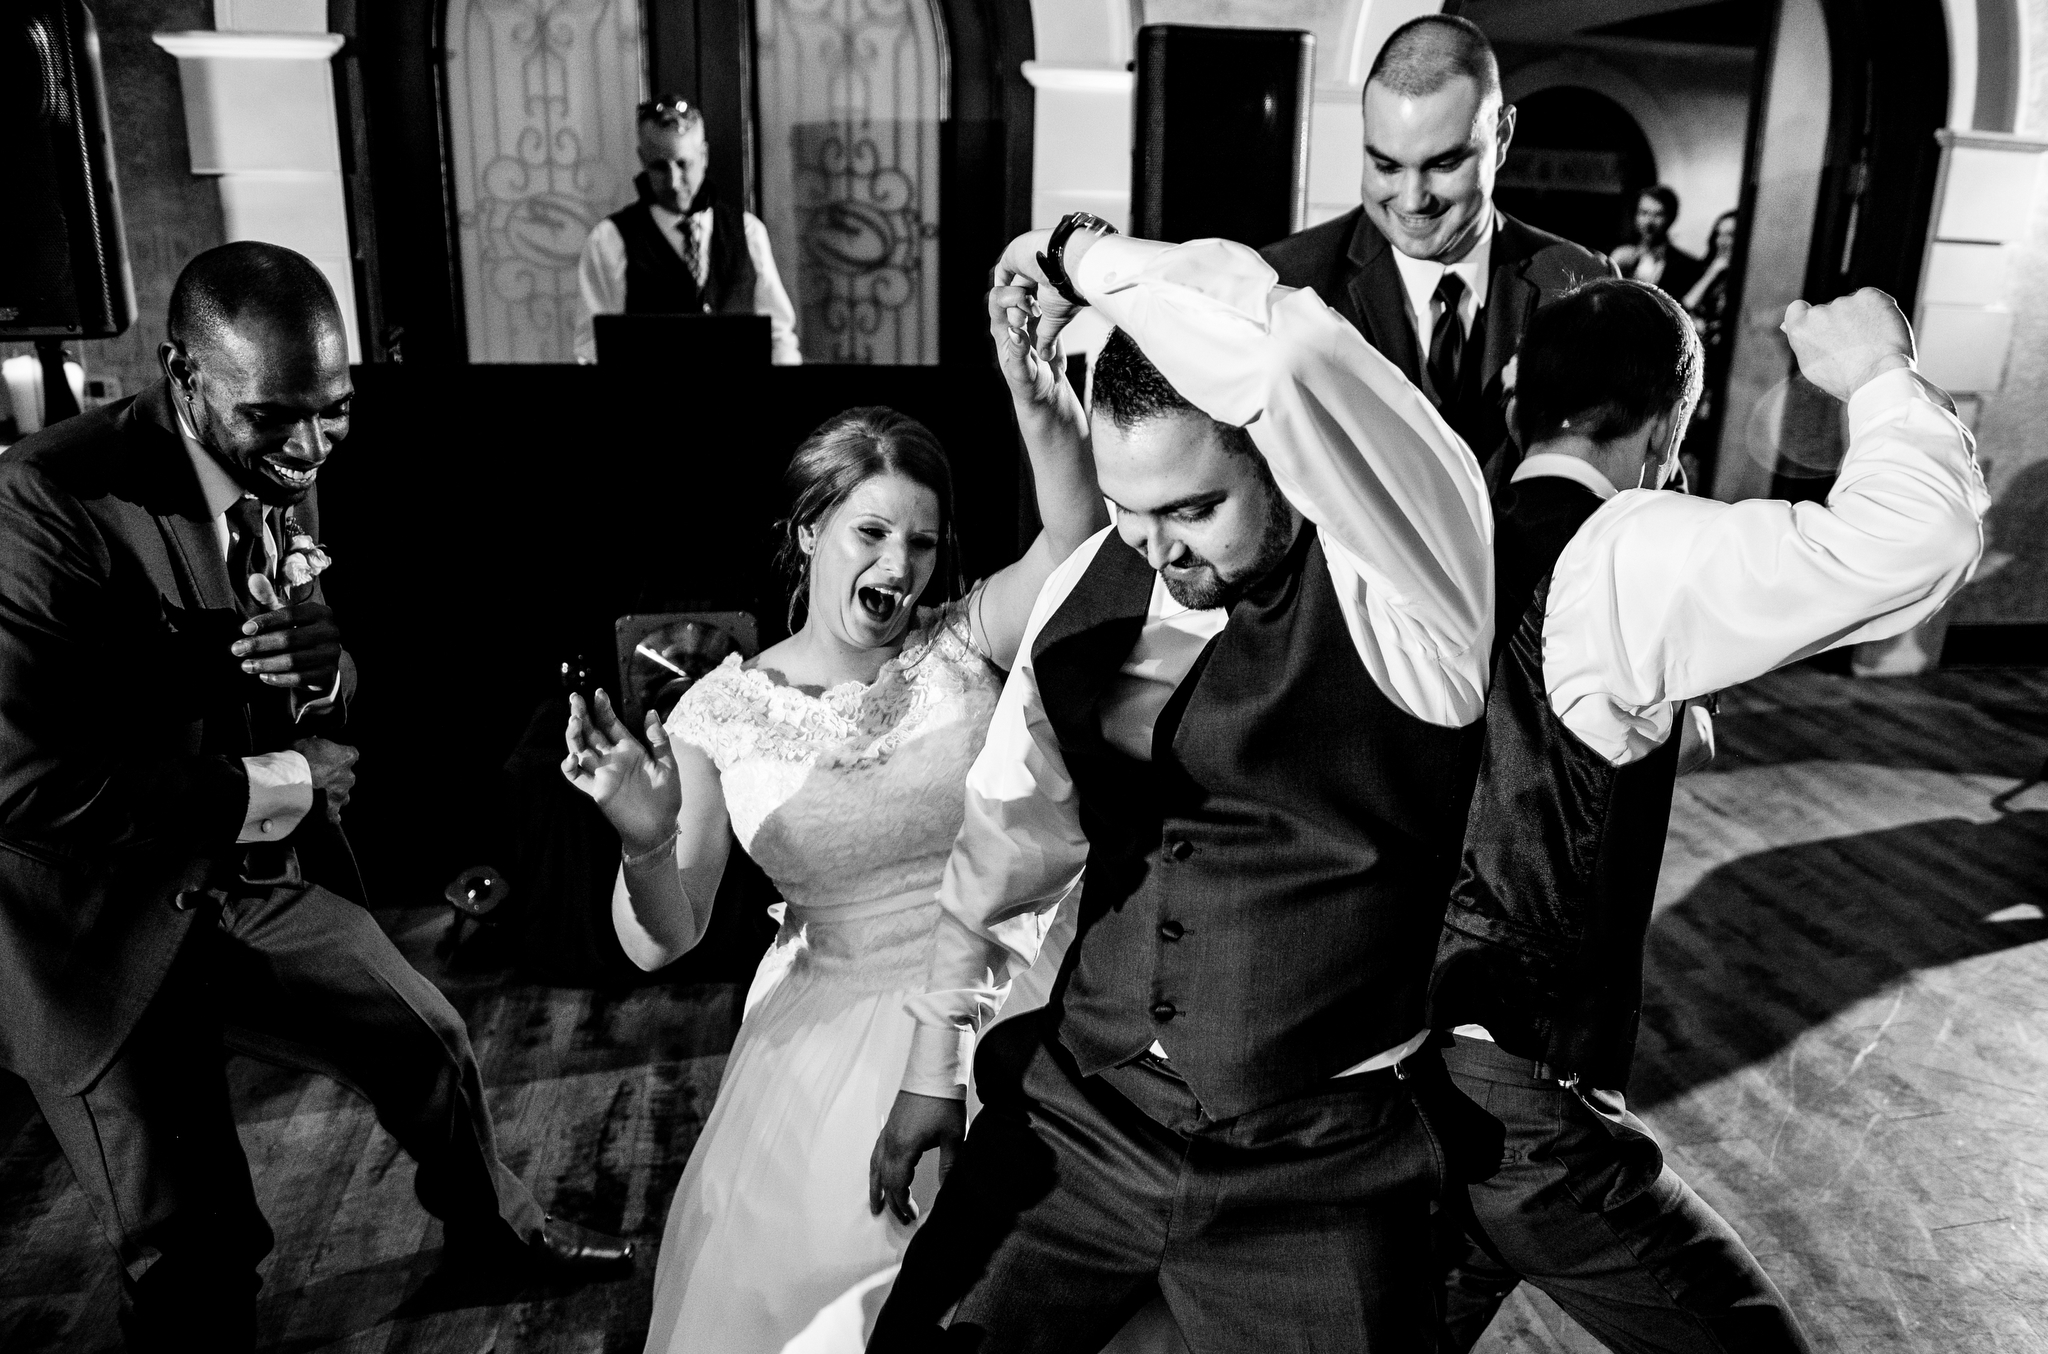 Childress Vineyards wedding dancing.jpg